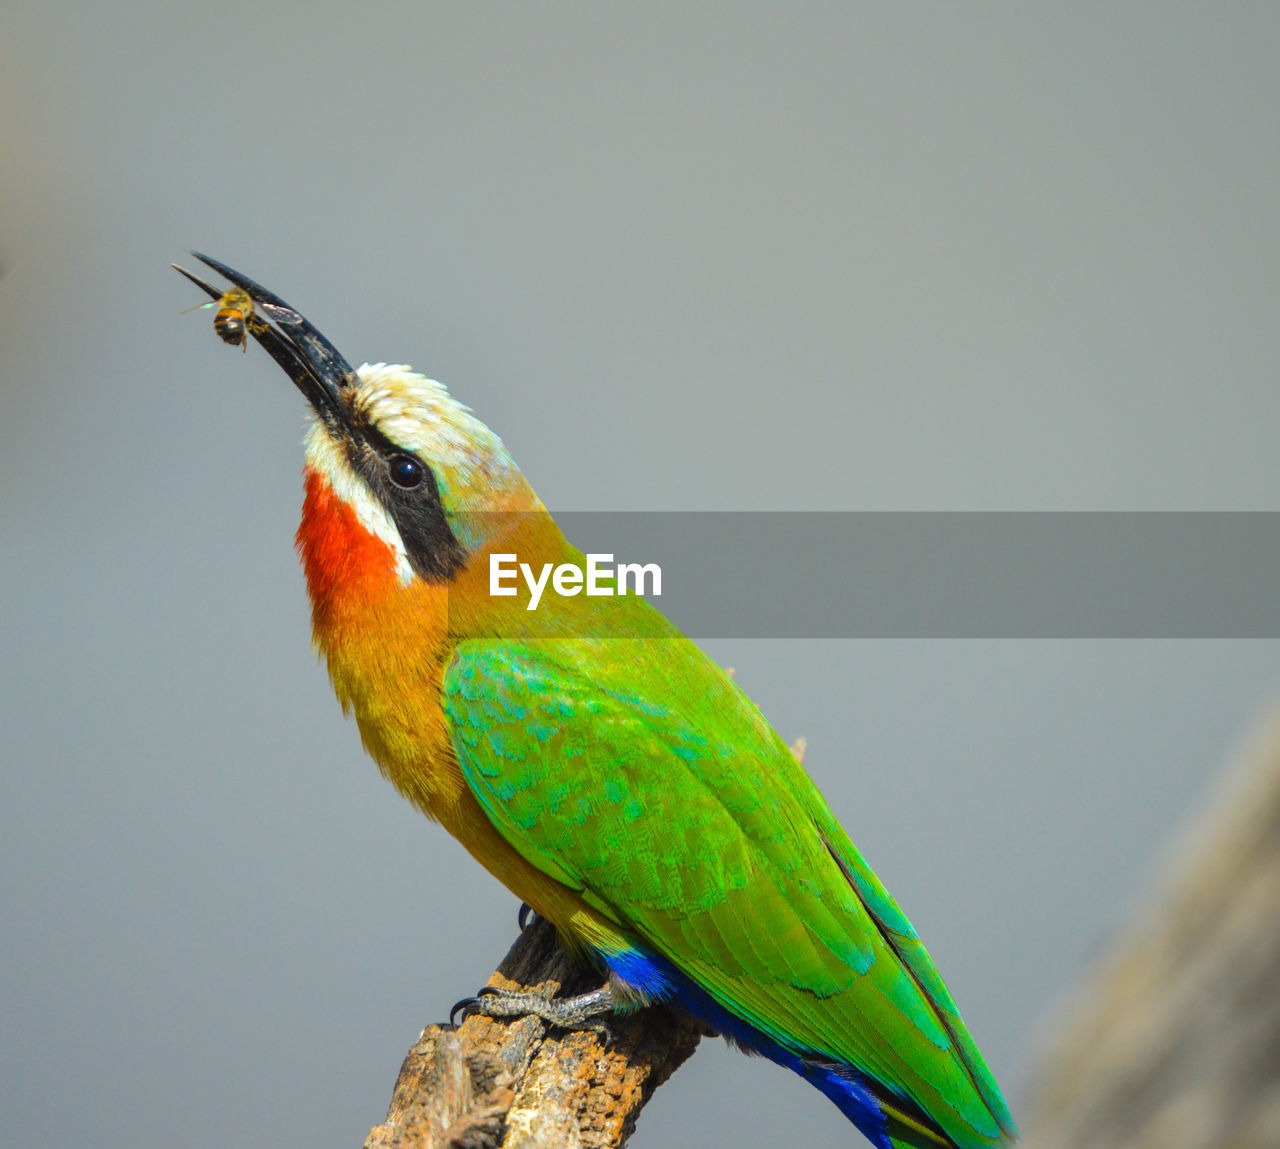 bird, animal themes, animal wildlife, vertebrate, animal, animals in the wild, one animal, perching, close-up, day, no people, nature, focus on foreground, parrot, copy space, multi colored, beauty in nature, beak, tree, green color, outdoors